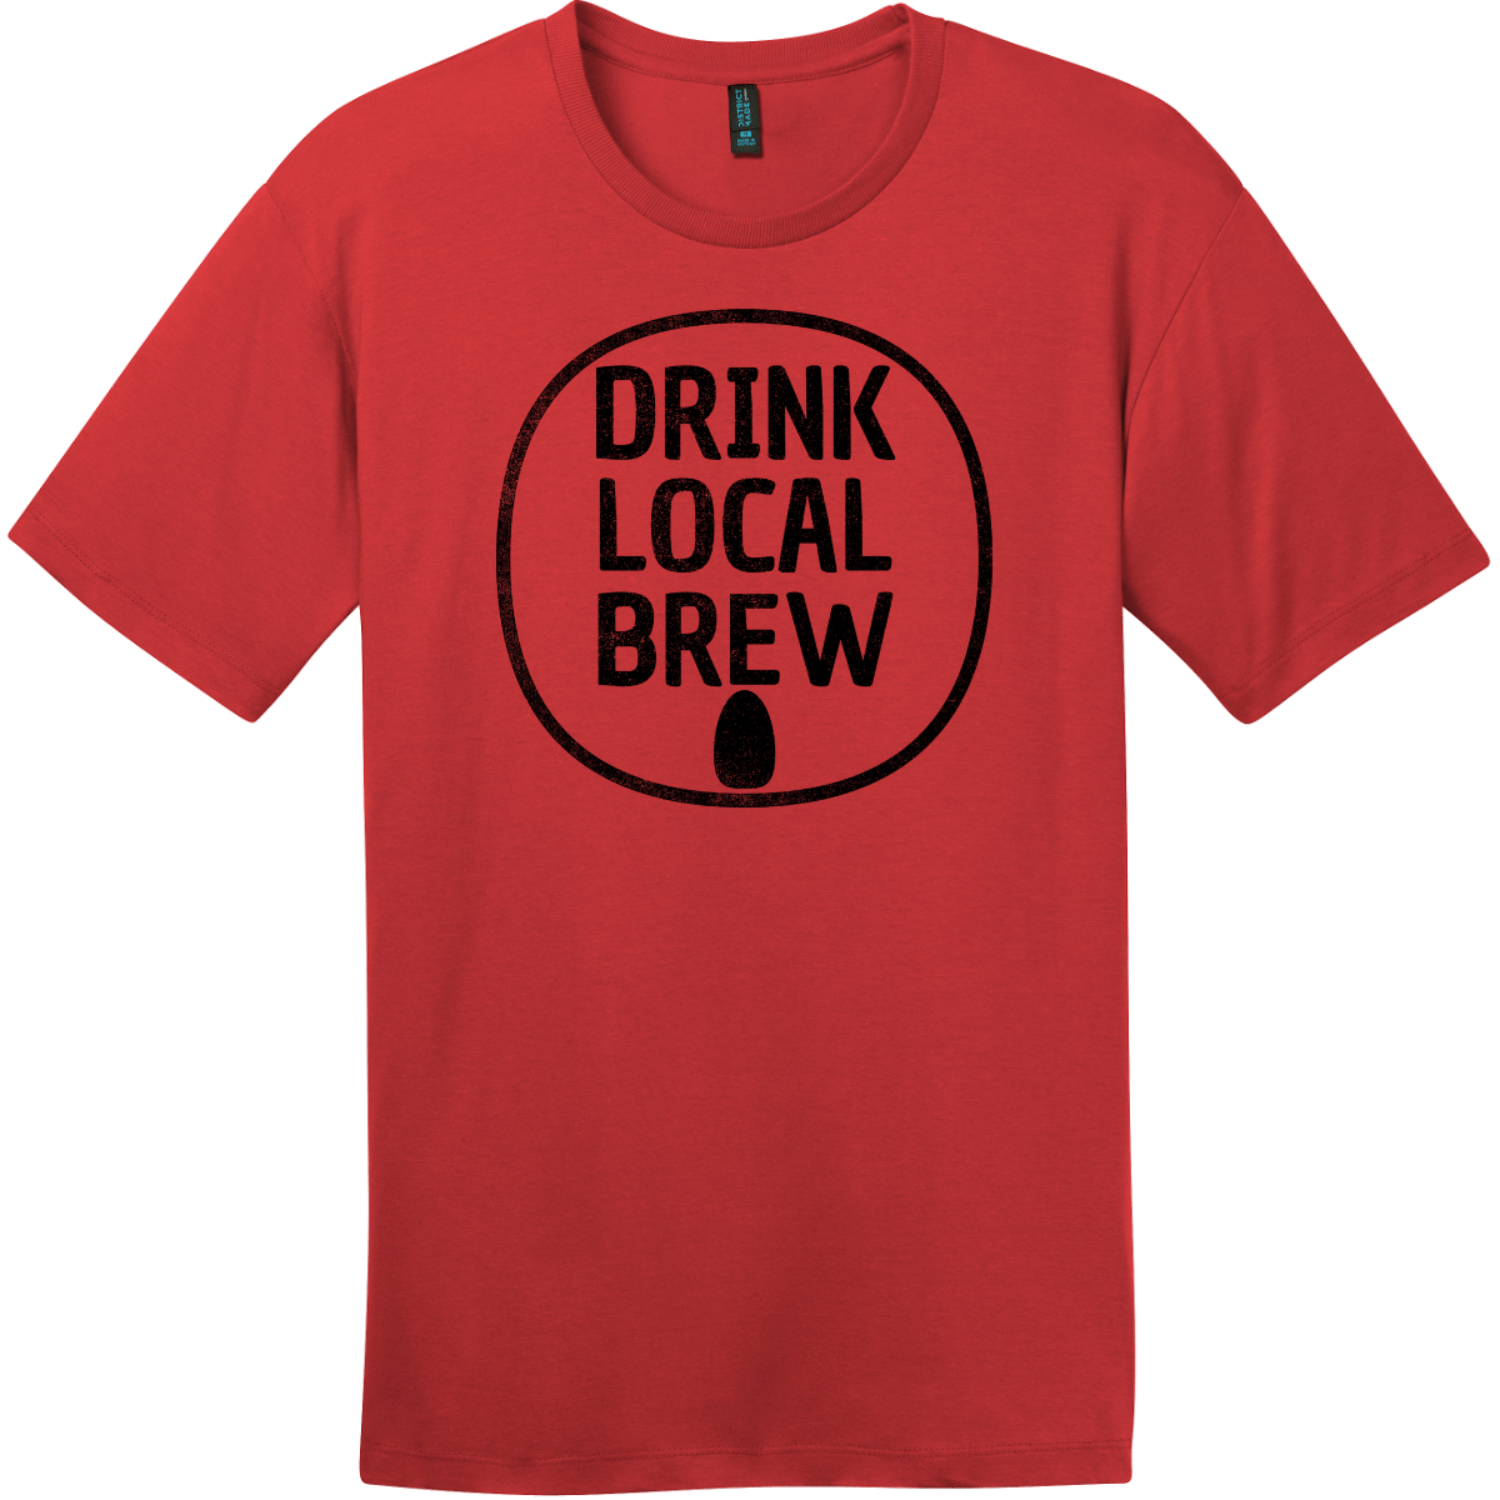 Drink Local Brew Can T-Shirt Classic Red District Perfect Weight Tee DT104